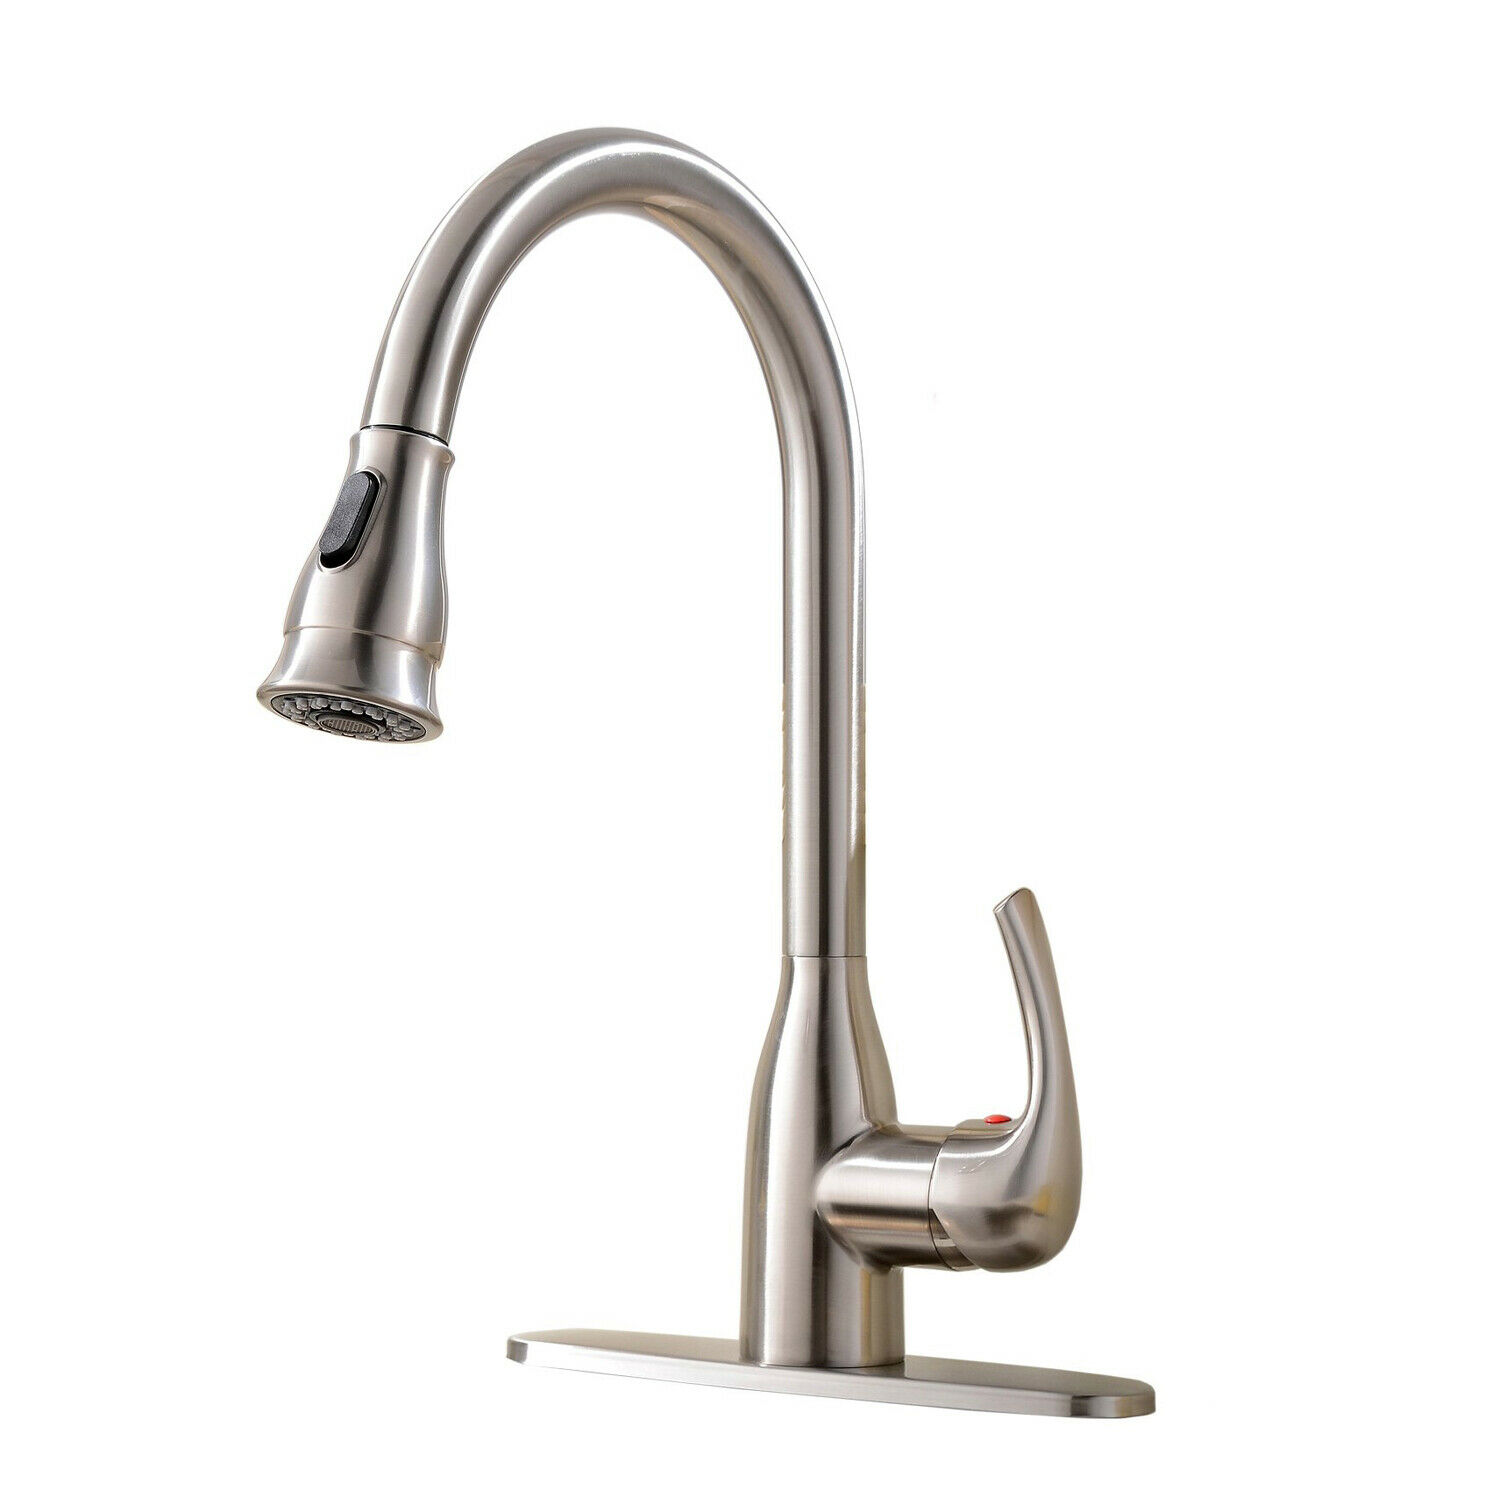 Brushed Nickel Kitchen Faucet Sink Swivel Mixer Tap with Cover Plate Deck Mount